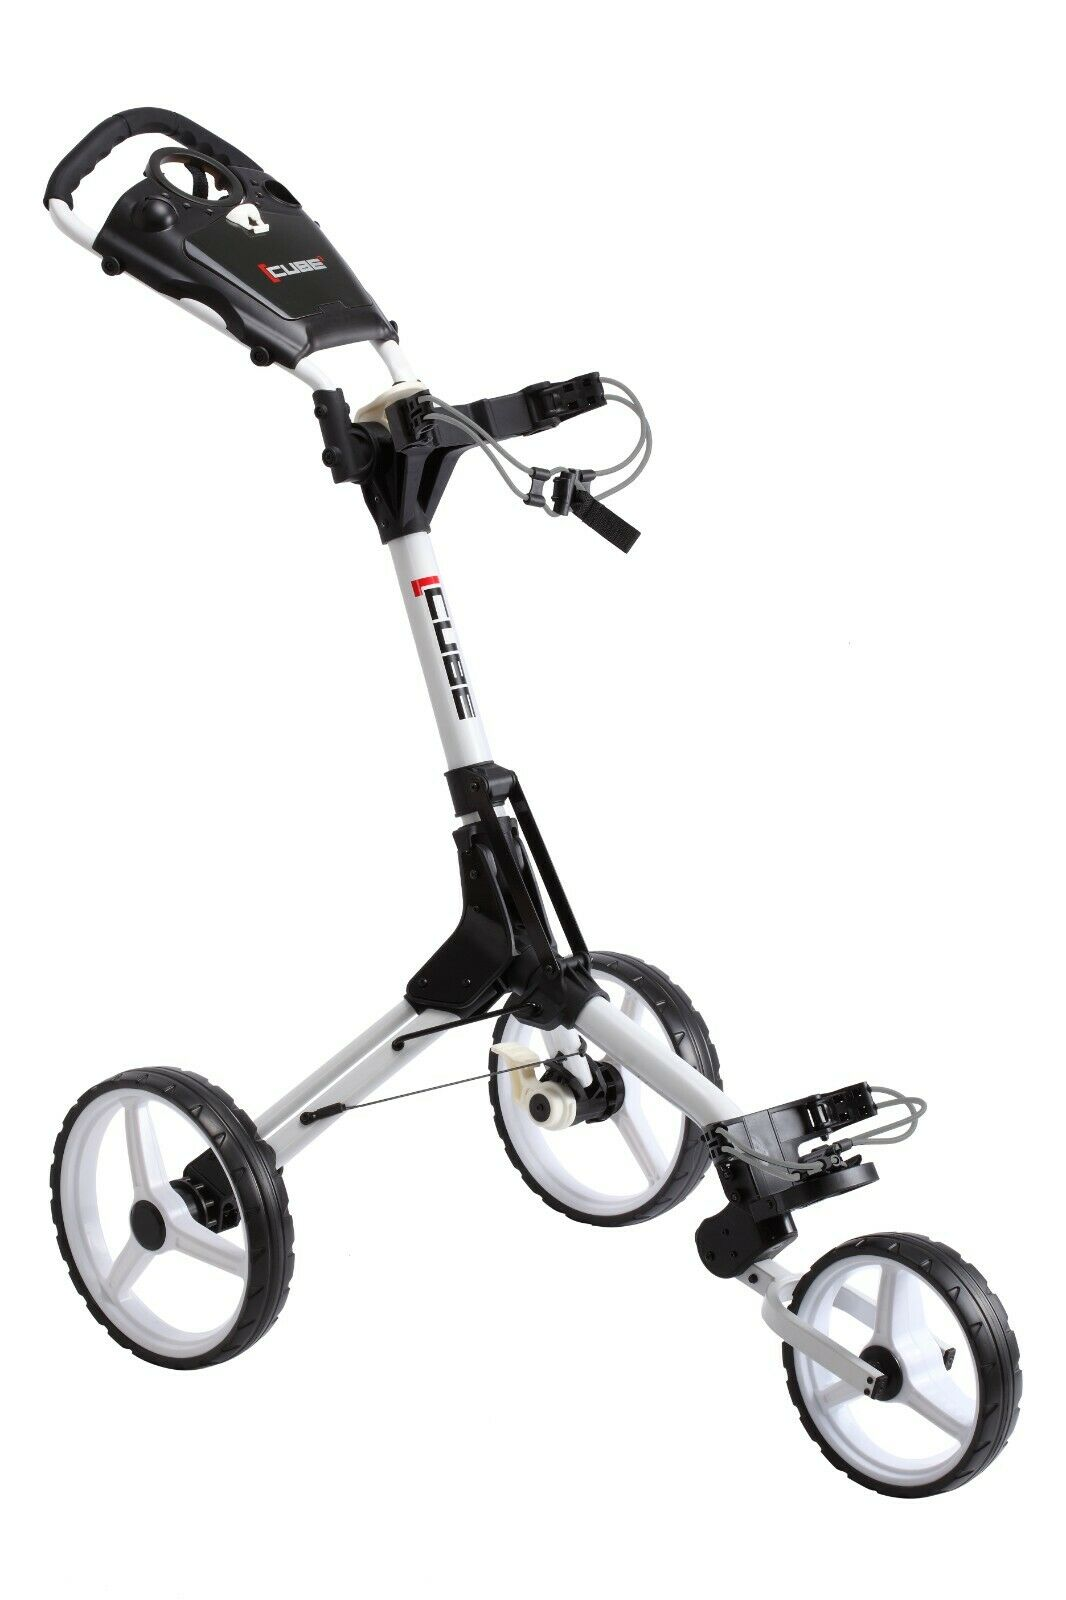 Cube 3 Wheel Compact Golf Push Cart with Umbrella Holder - The Golfing Eagles